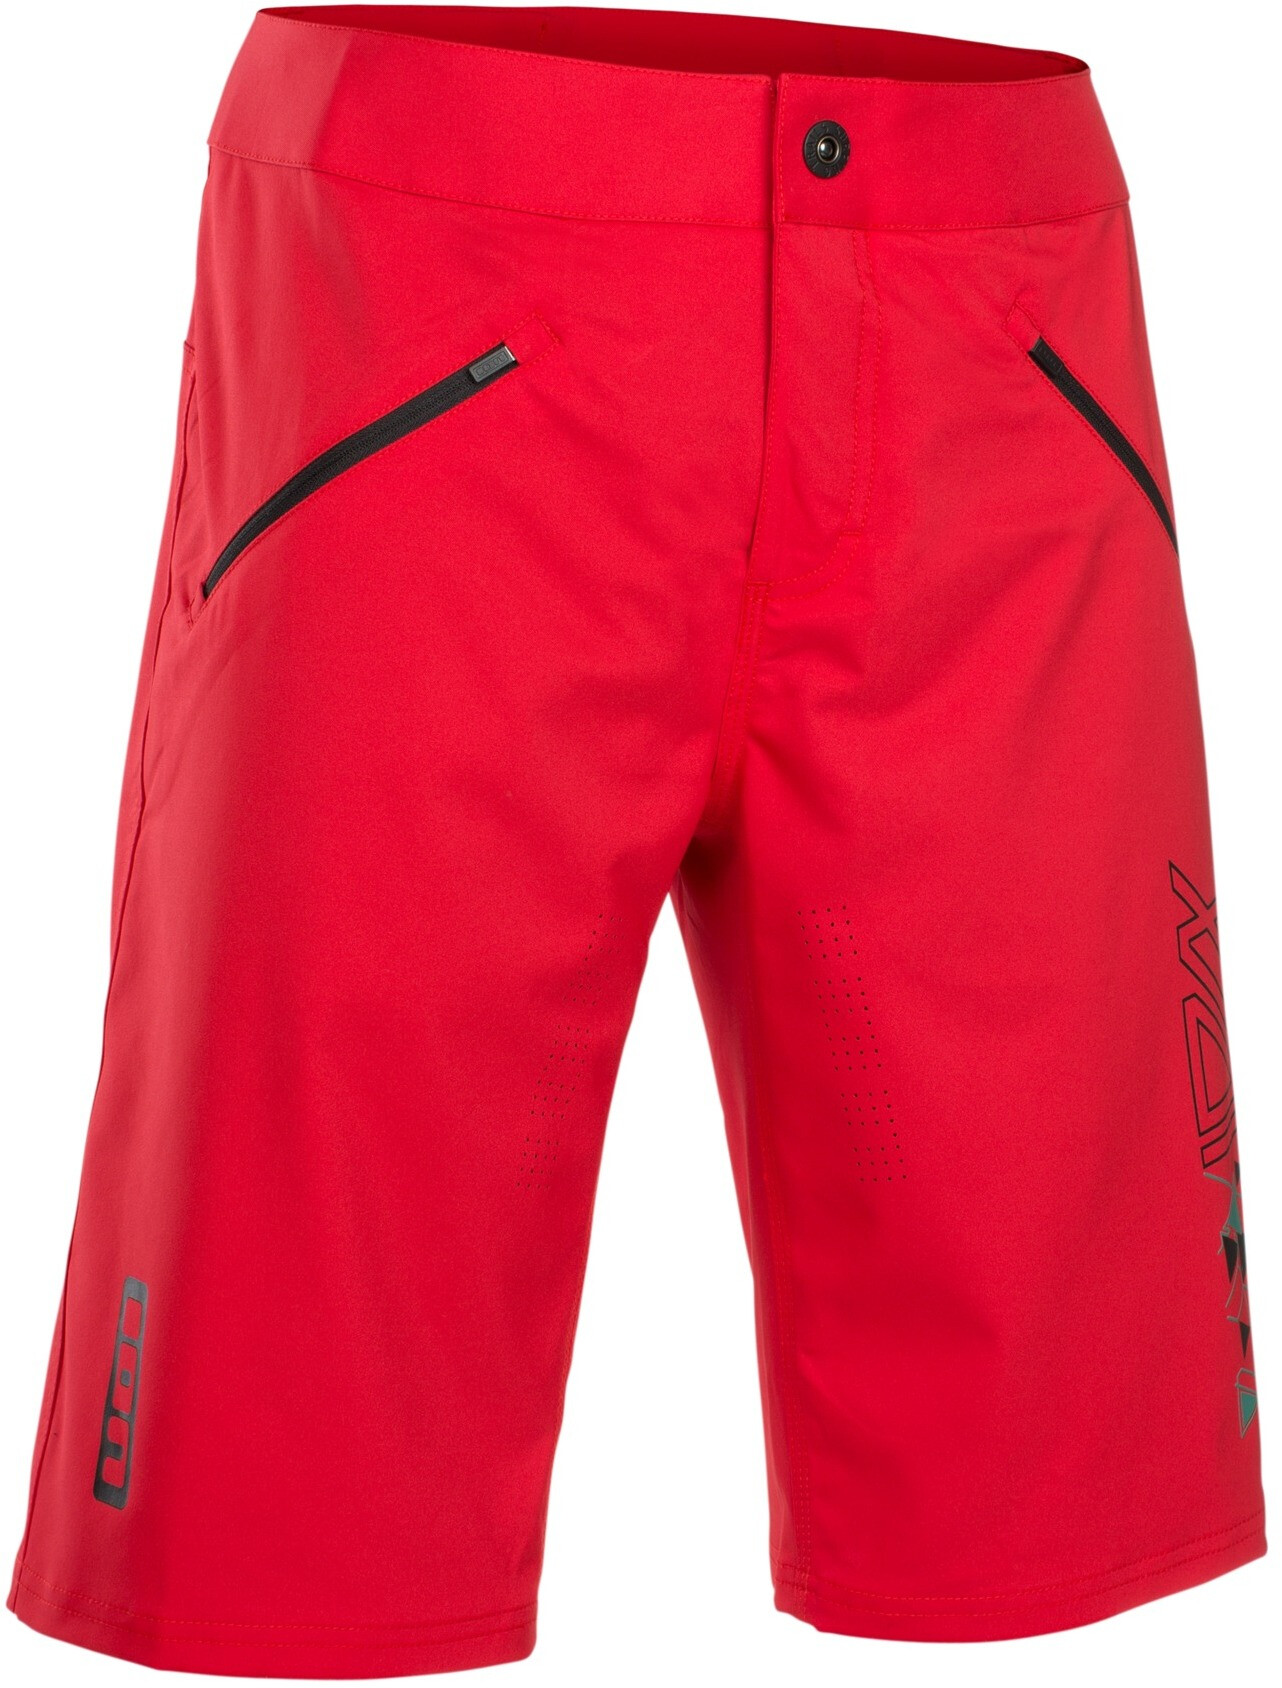 ION Traze Cykelbukser Herrer, rageous red (2019) | Trousers